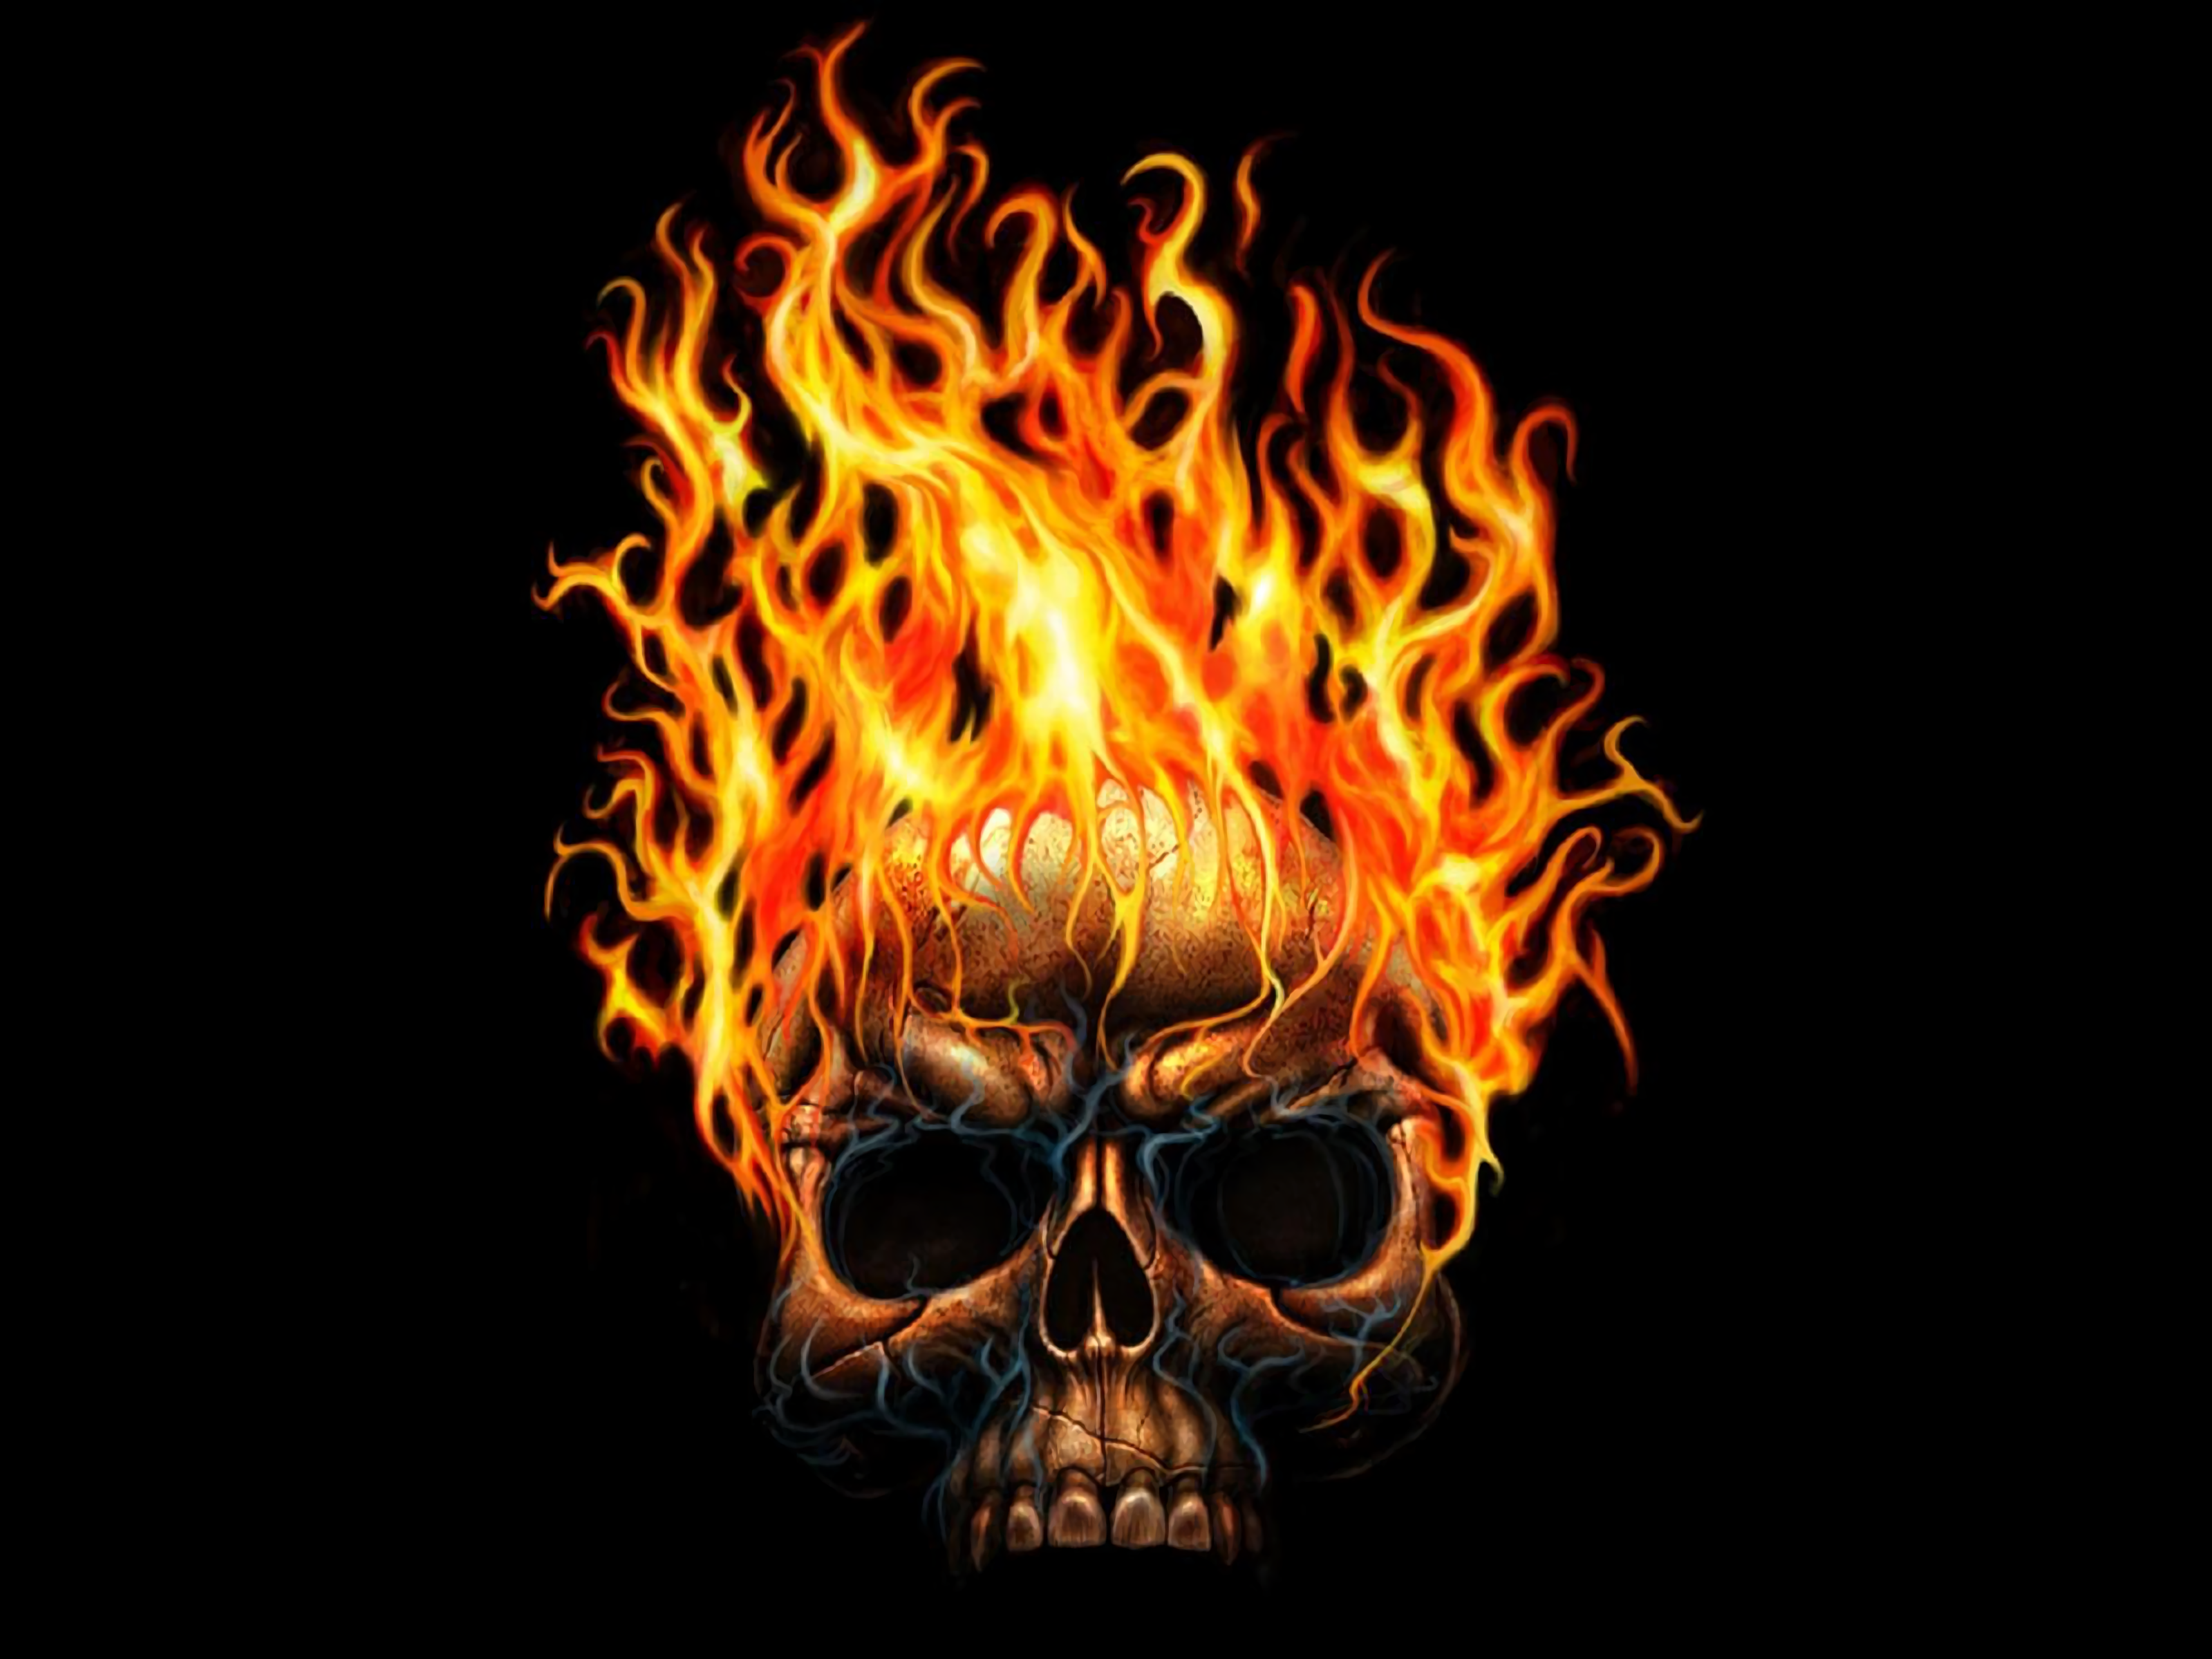 Fire Skull Wallpaper